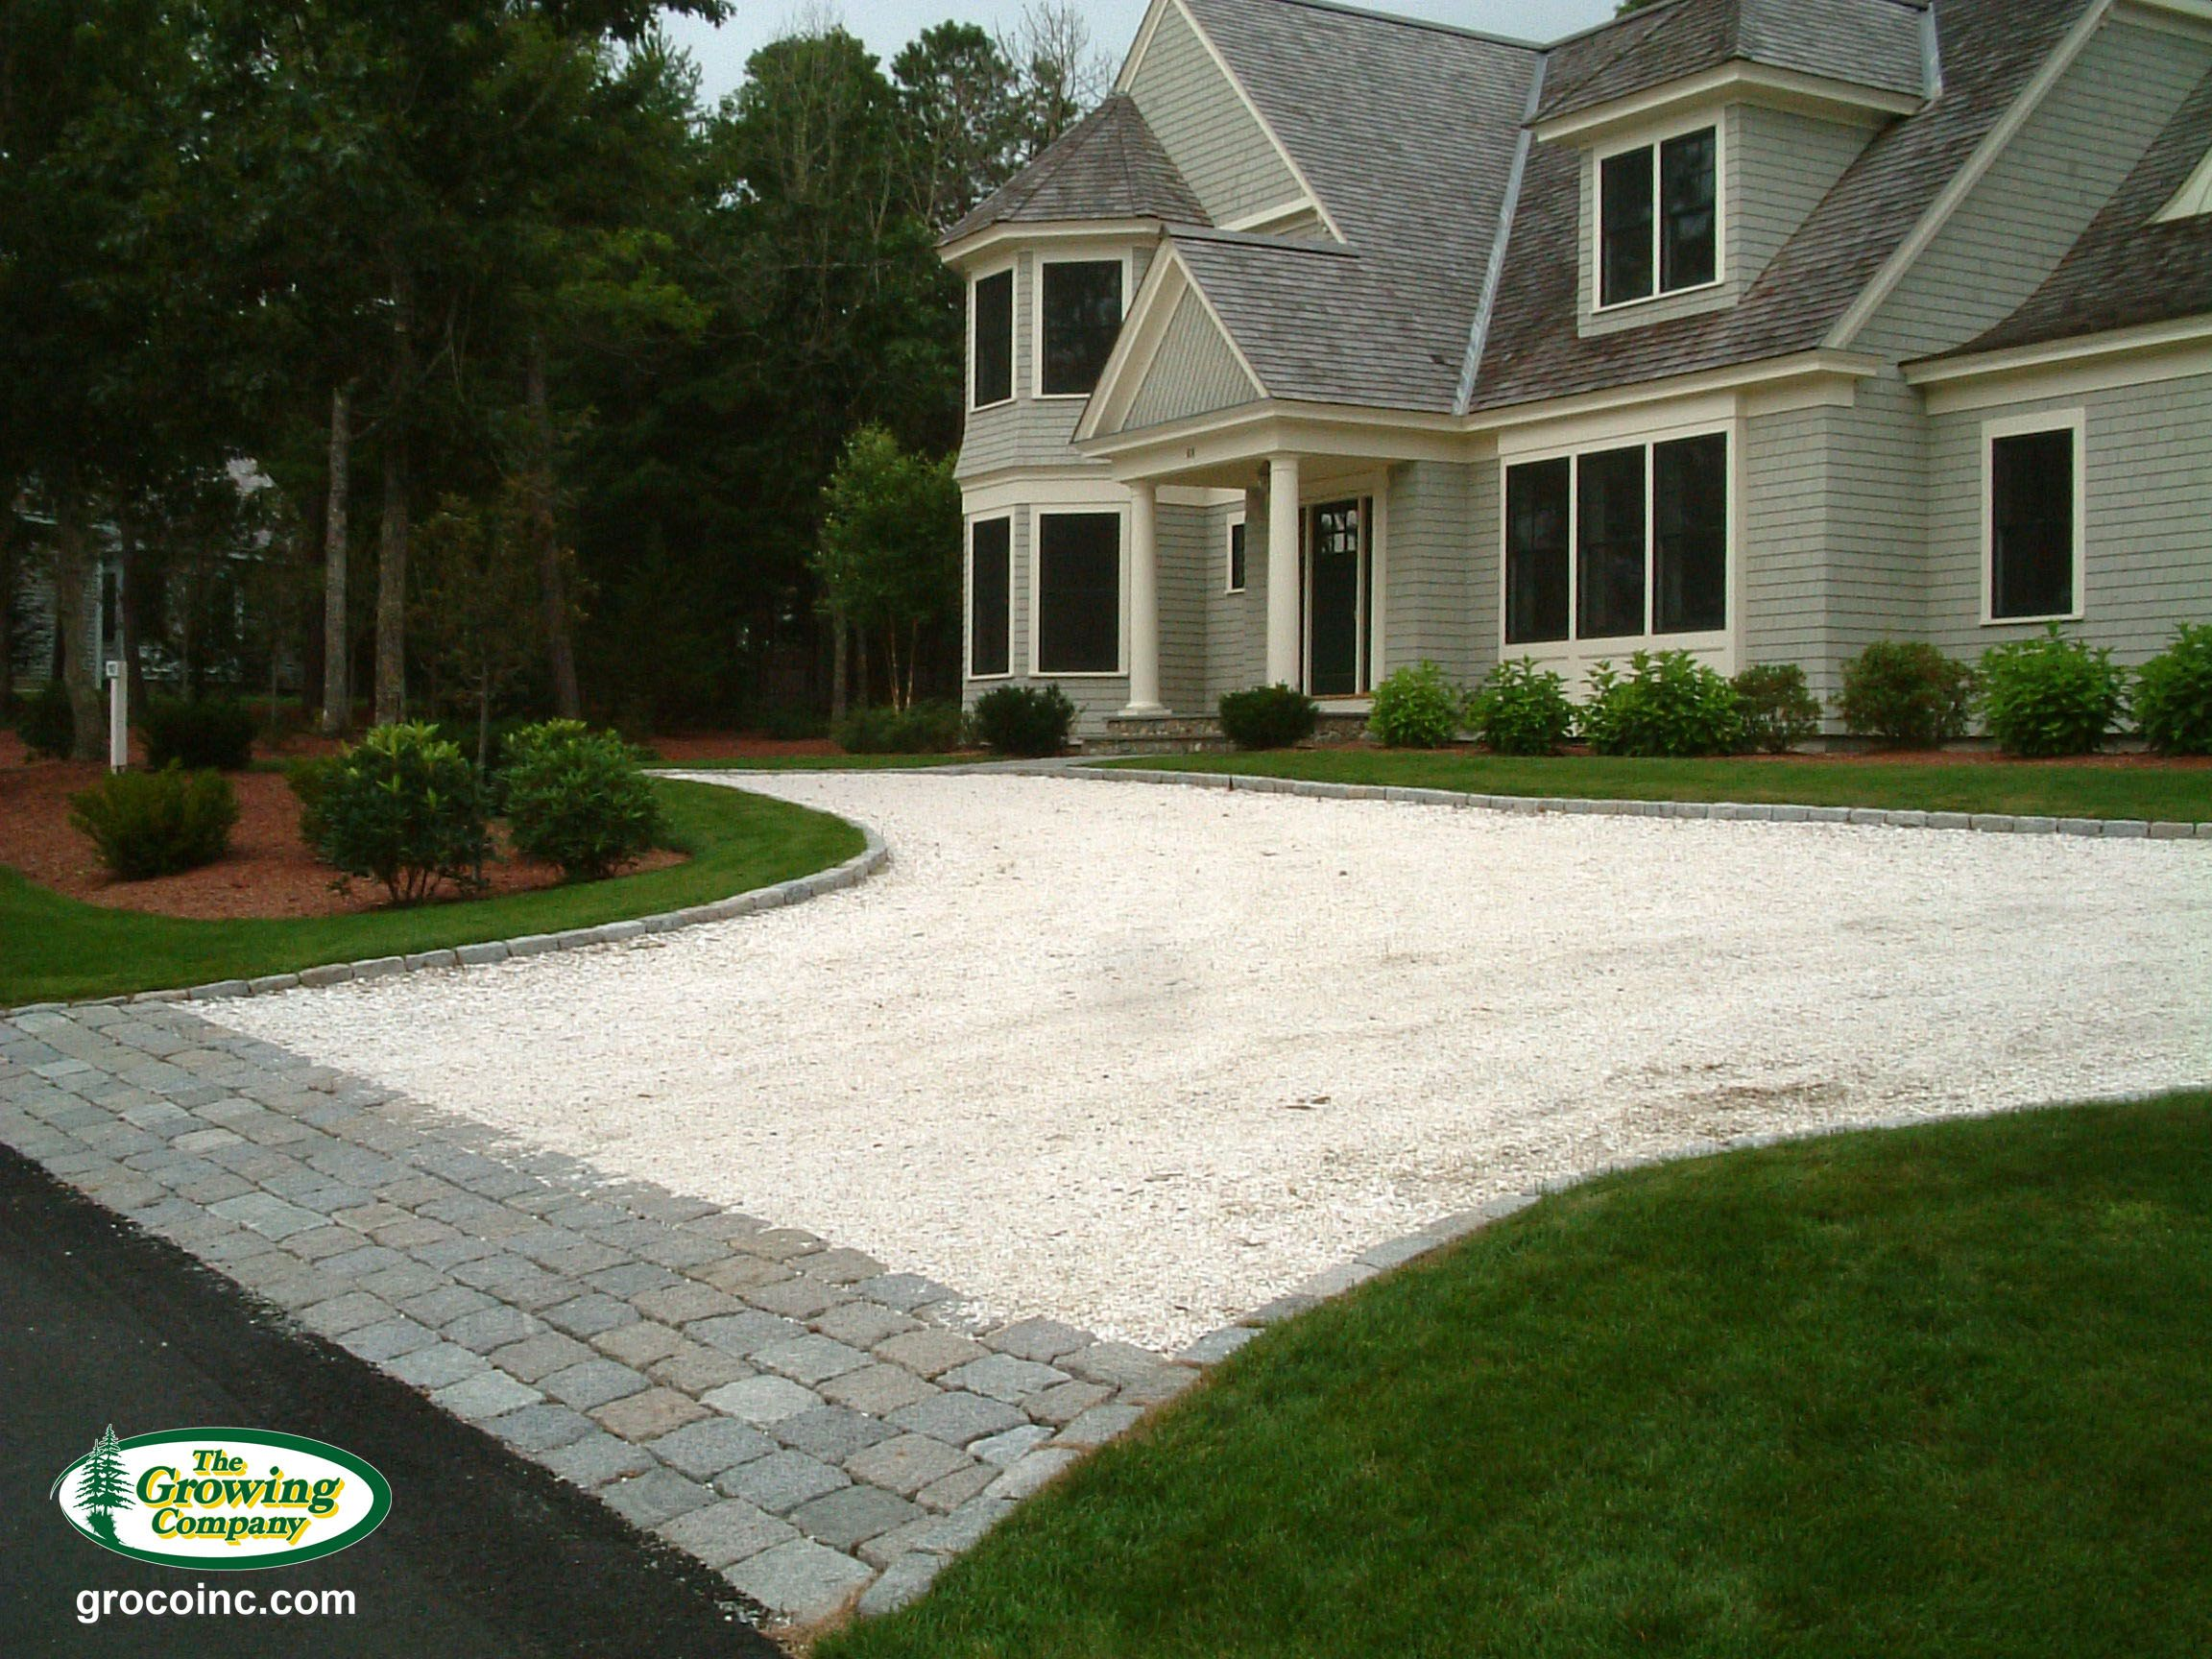 Driveway of crushed sea shells with cobblestone apron for Driveway apron ideas